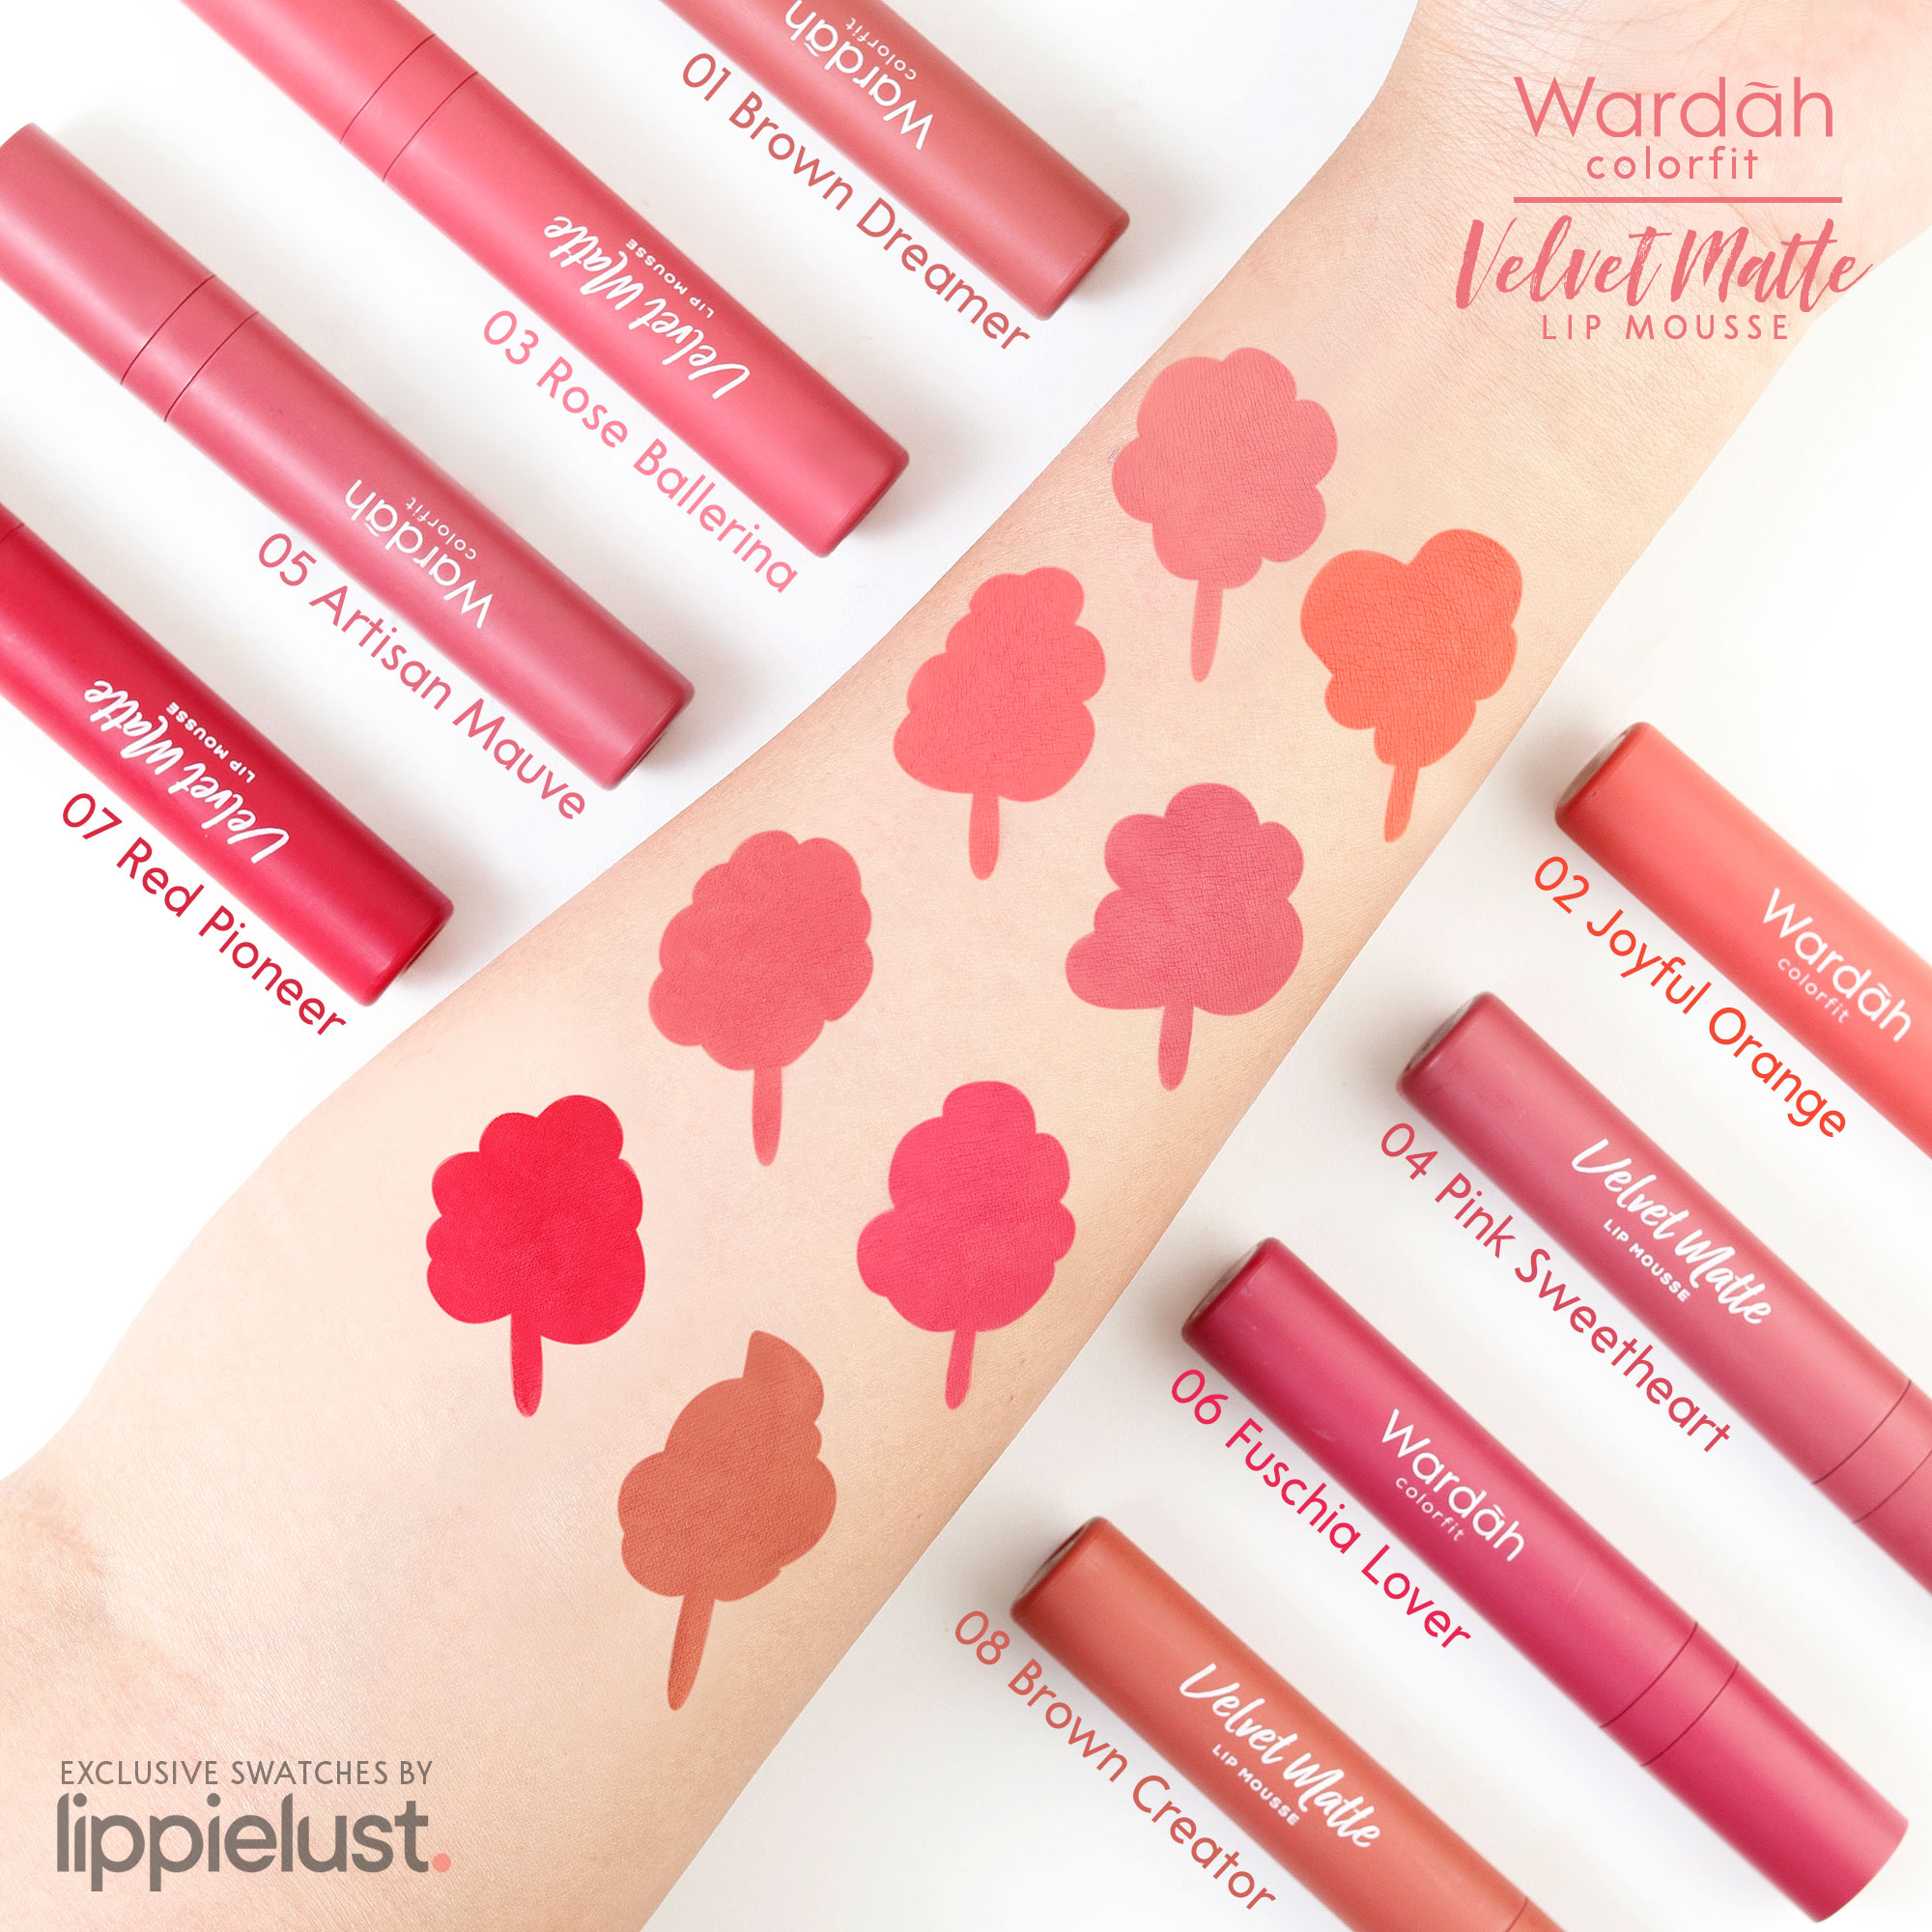 [SWATCHES & REVIEW] WARDAH COLORFIT VELVET MATTE LIP